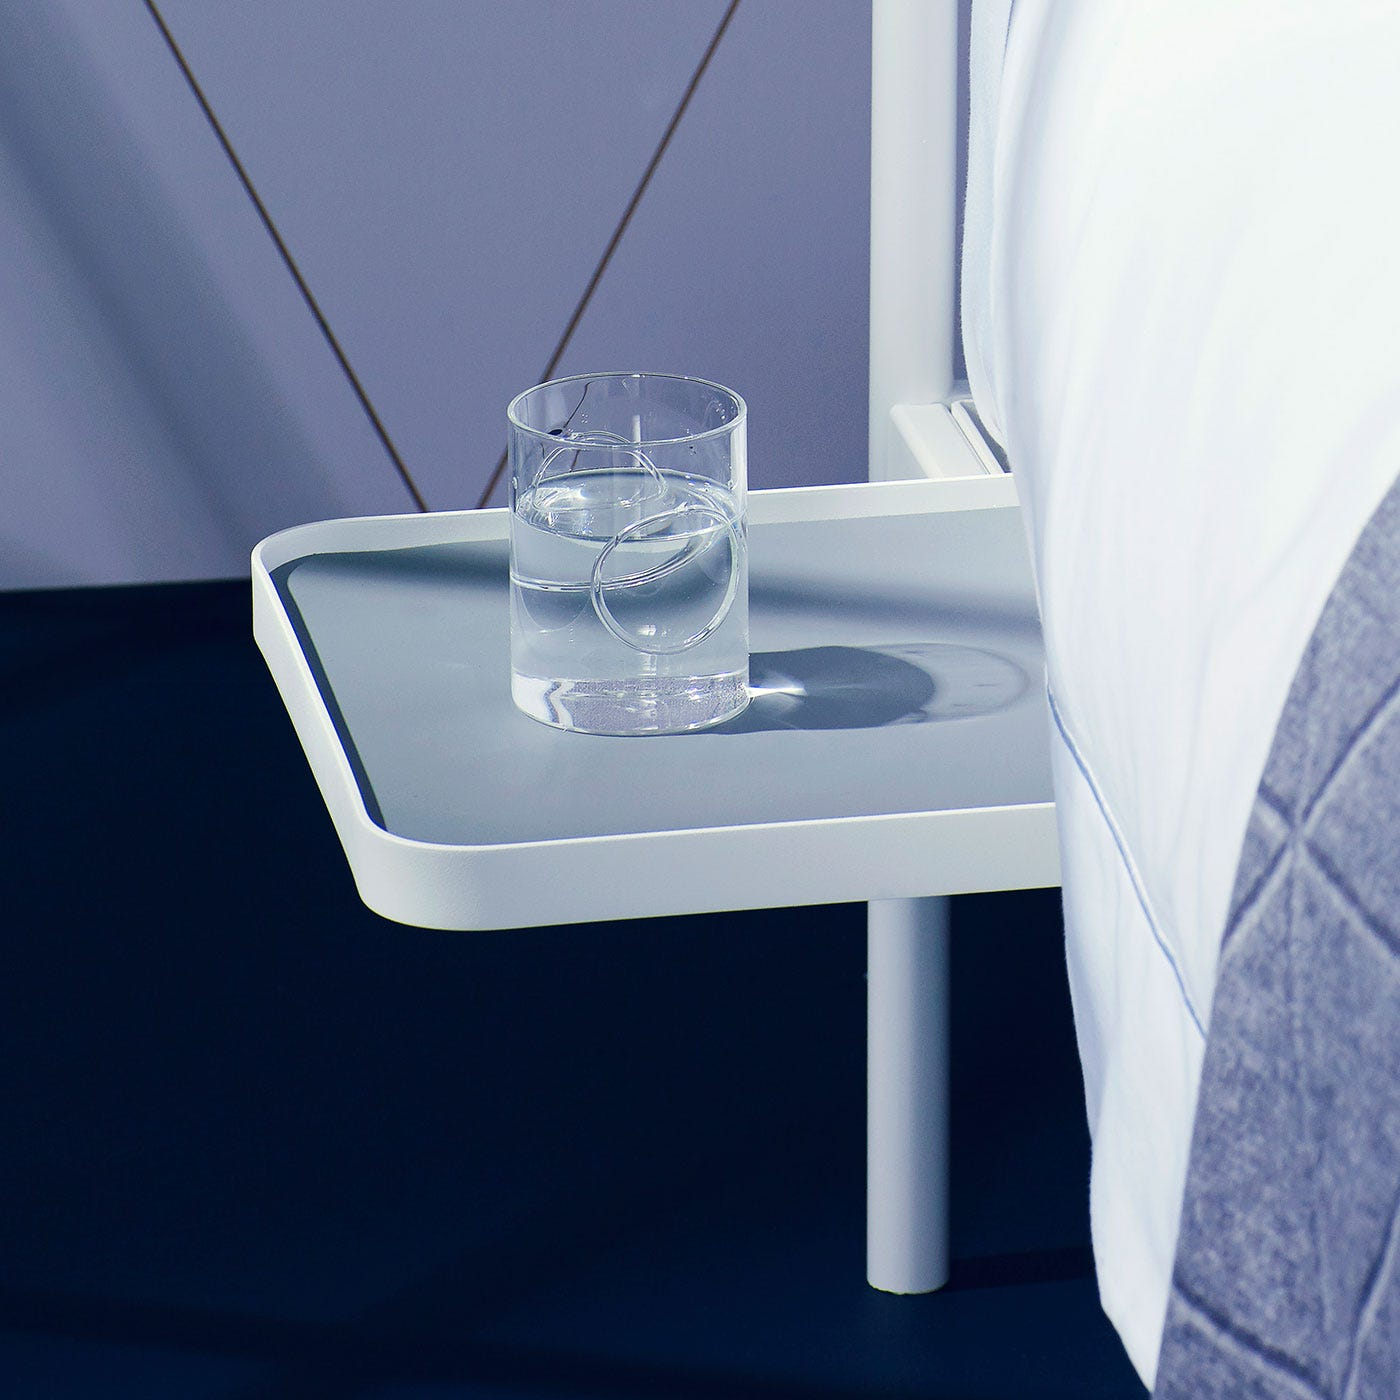 Dodie Bedside Attachment